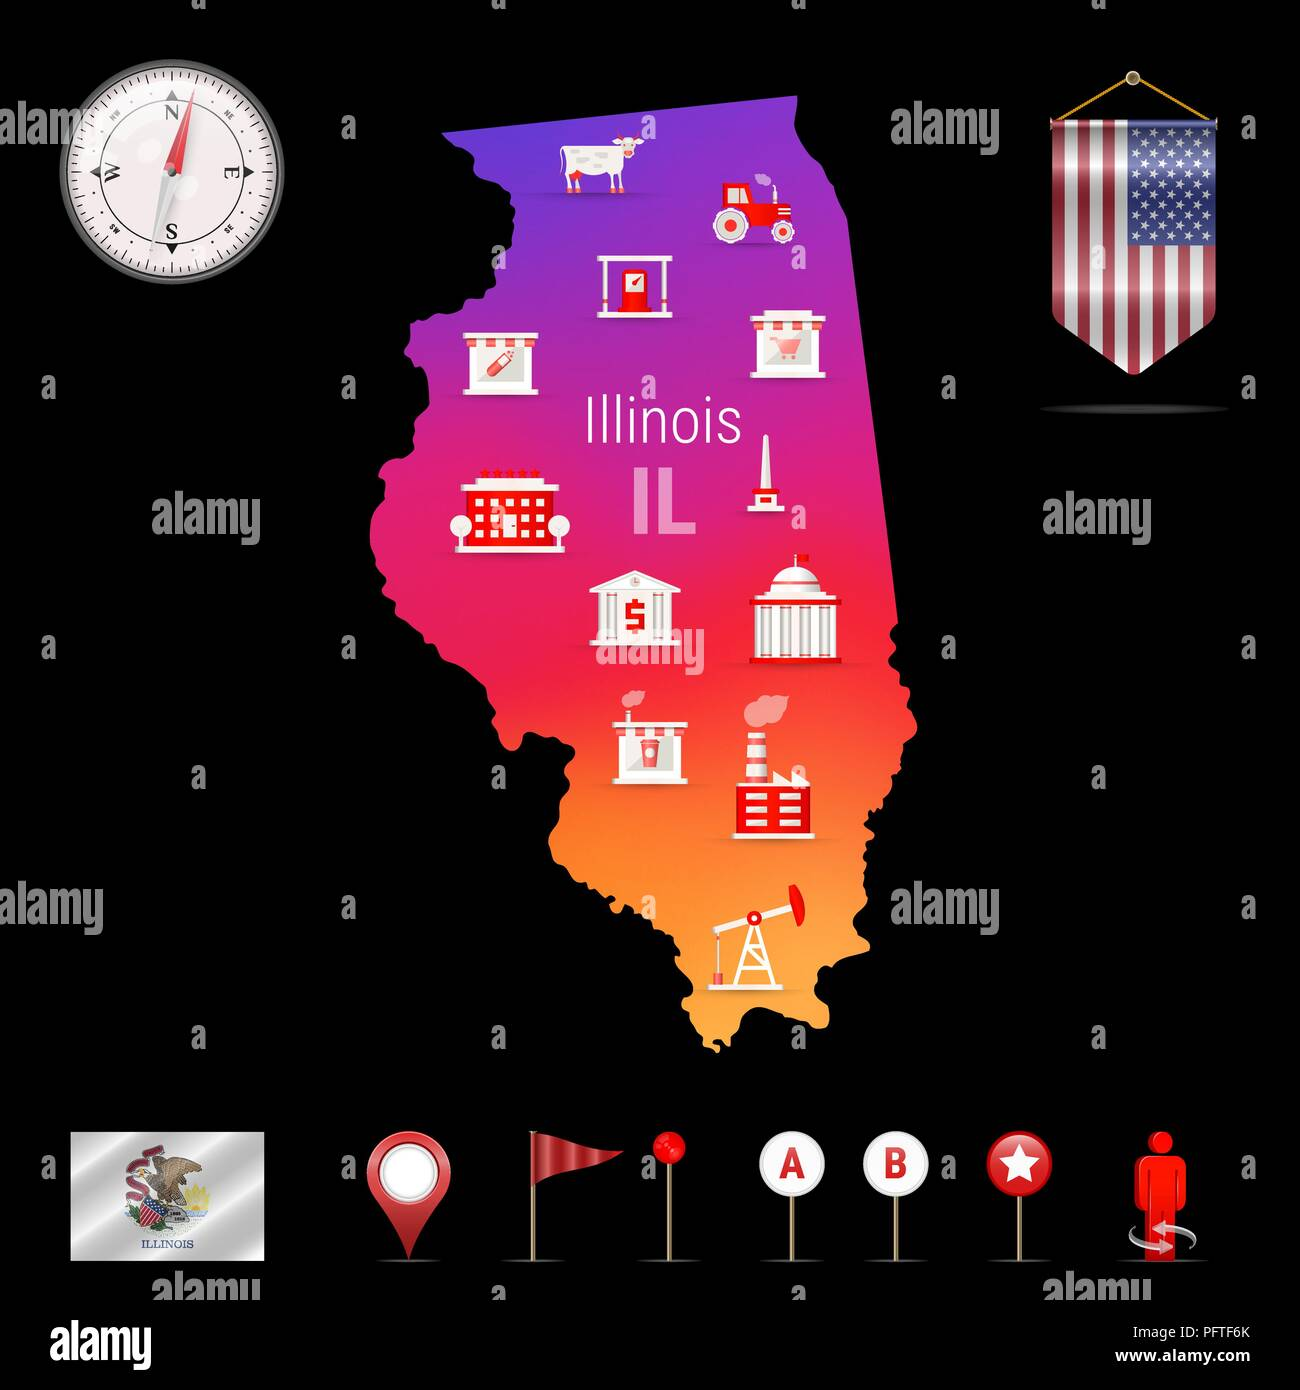 Illinois Vector Map, Night View. Compass Icon, Map Navigation Elements. Pennant Flag of the United States. Vector Flag of Illinois. Various Industries, Economic Geography Icons. - Stock Vector